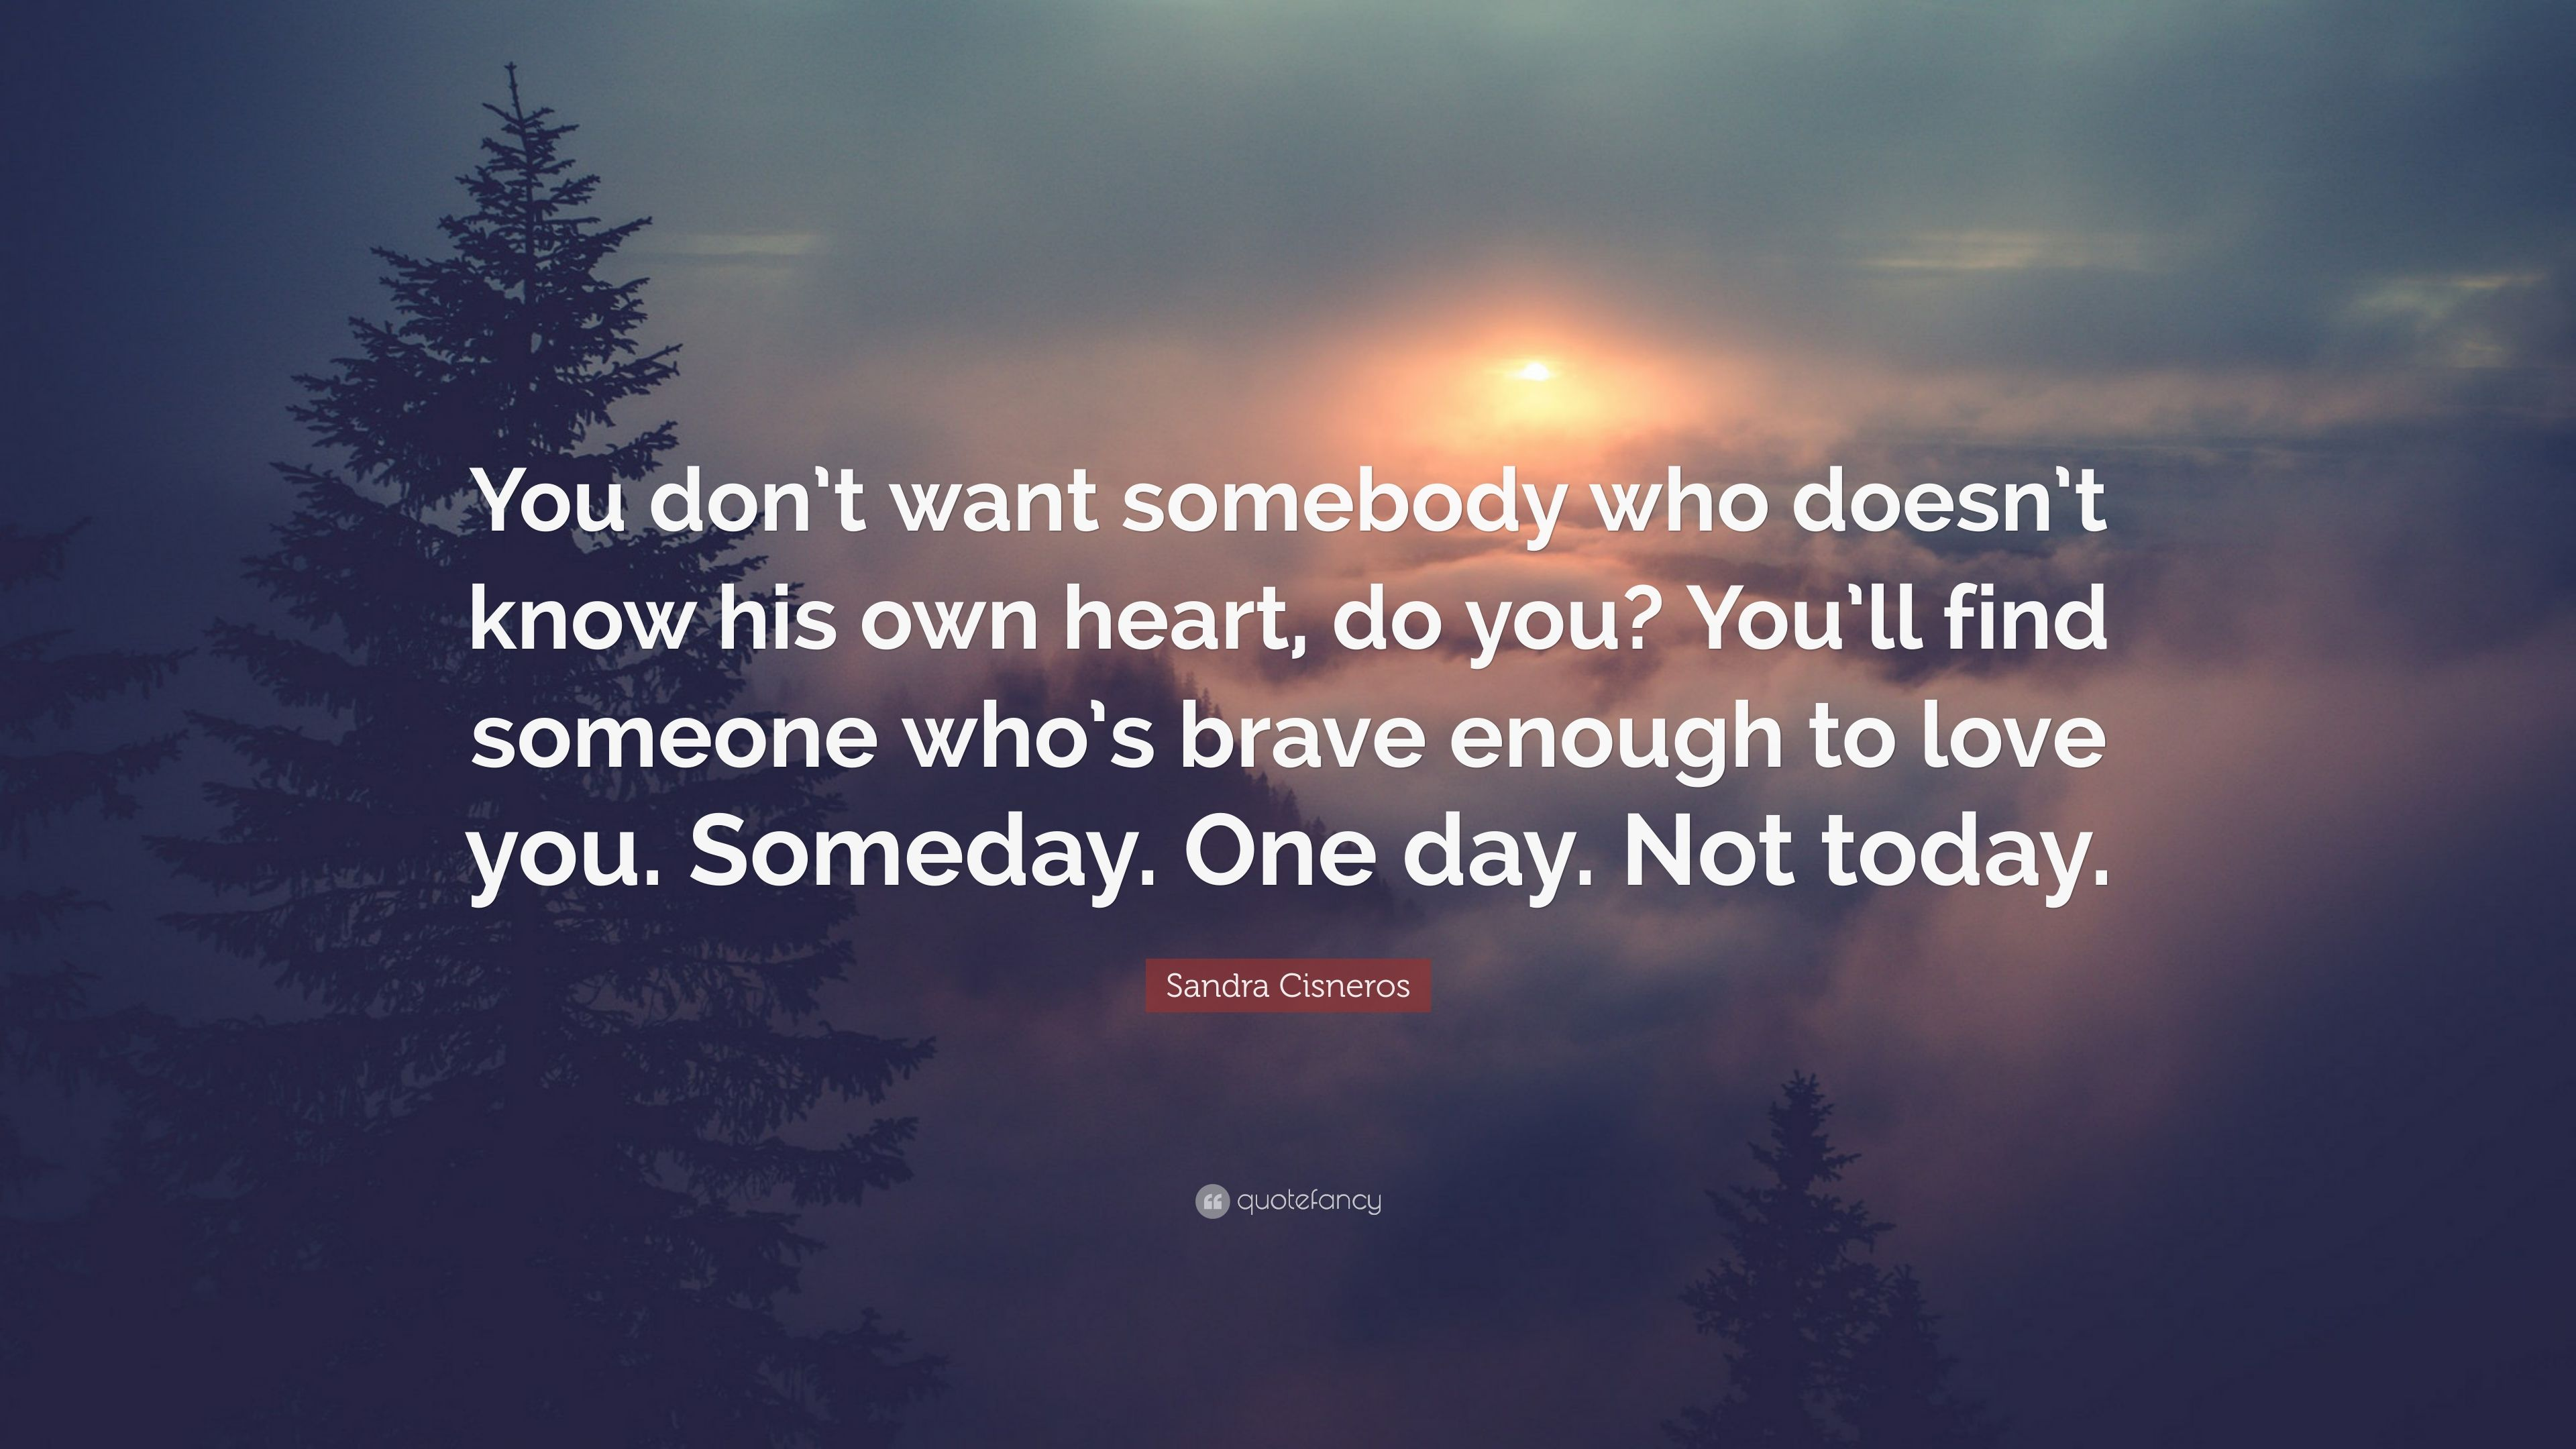 Exceptional Sandra Cisneros Quote: U201cYou Donu0027t Want Somebody Who Doesnu0027t Know